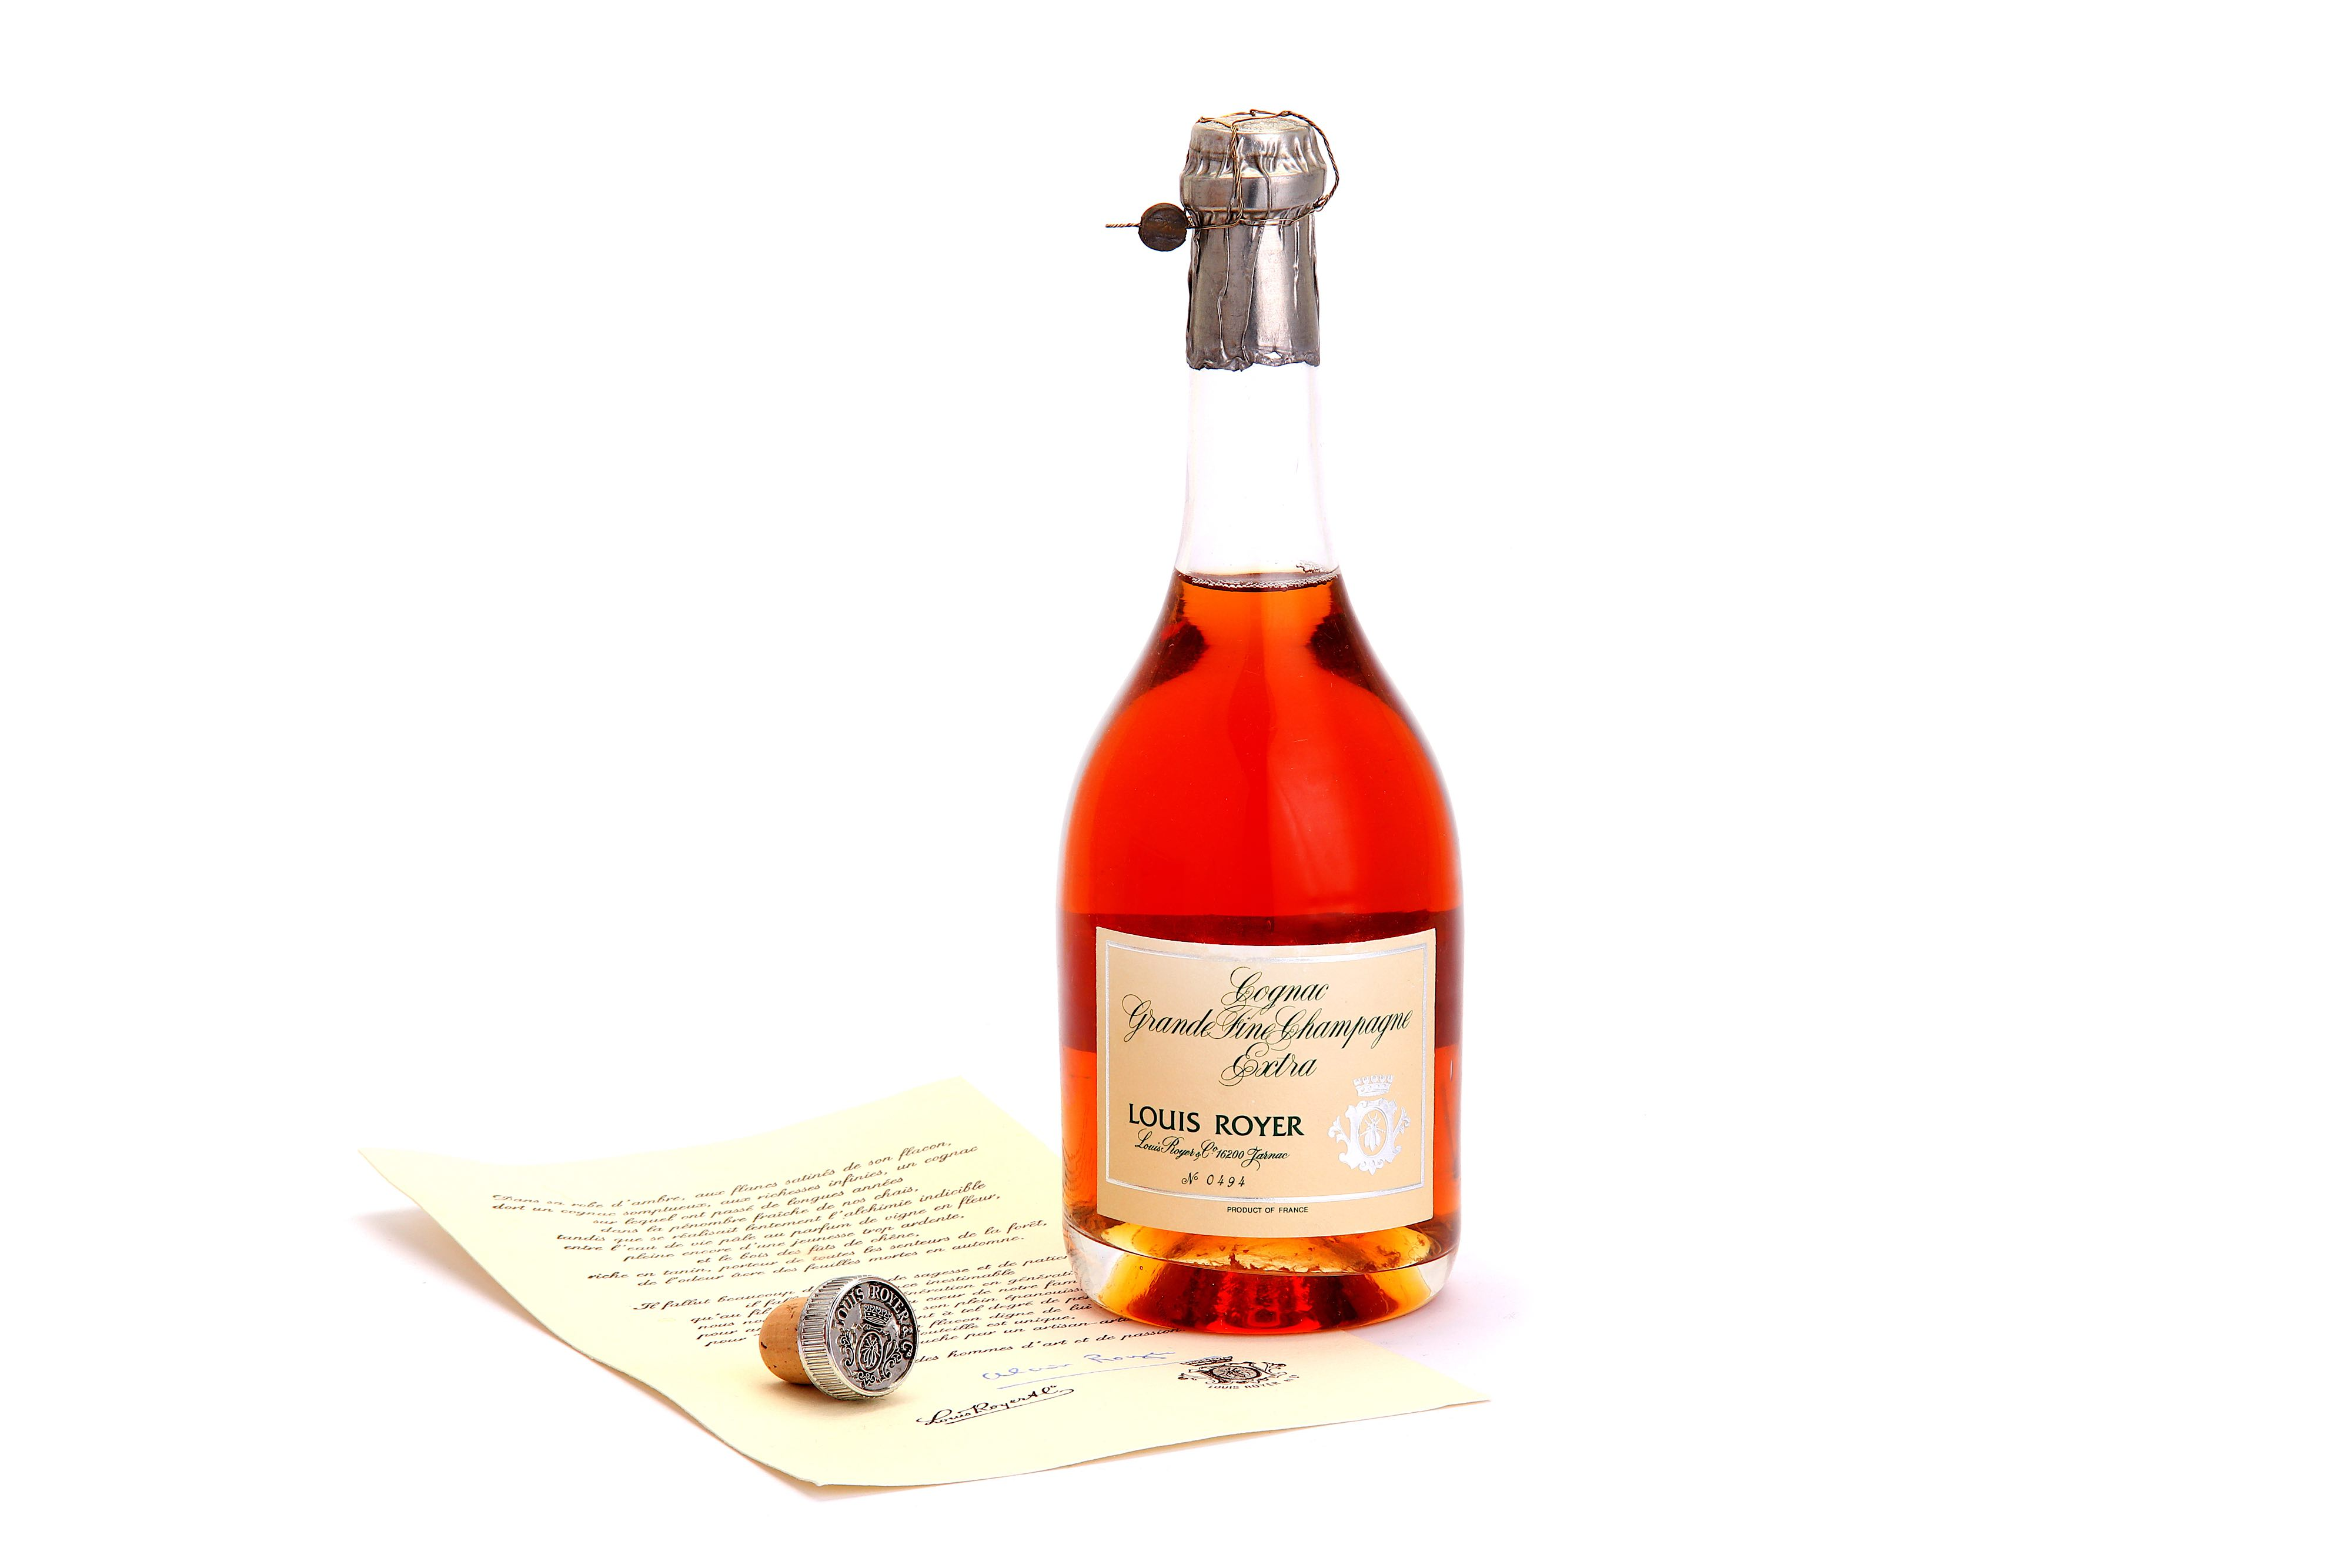 Lot 378 - ONE FACTICE BOTTLE OF LOUIS ROYER COGNAC - OWNED BY SIR HAROLD WILSON